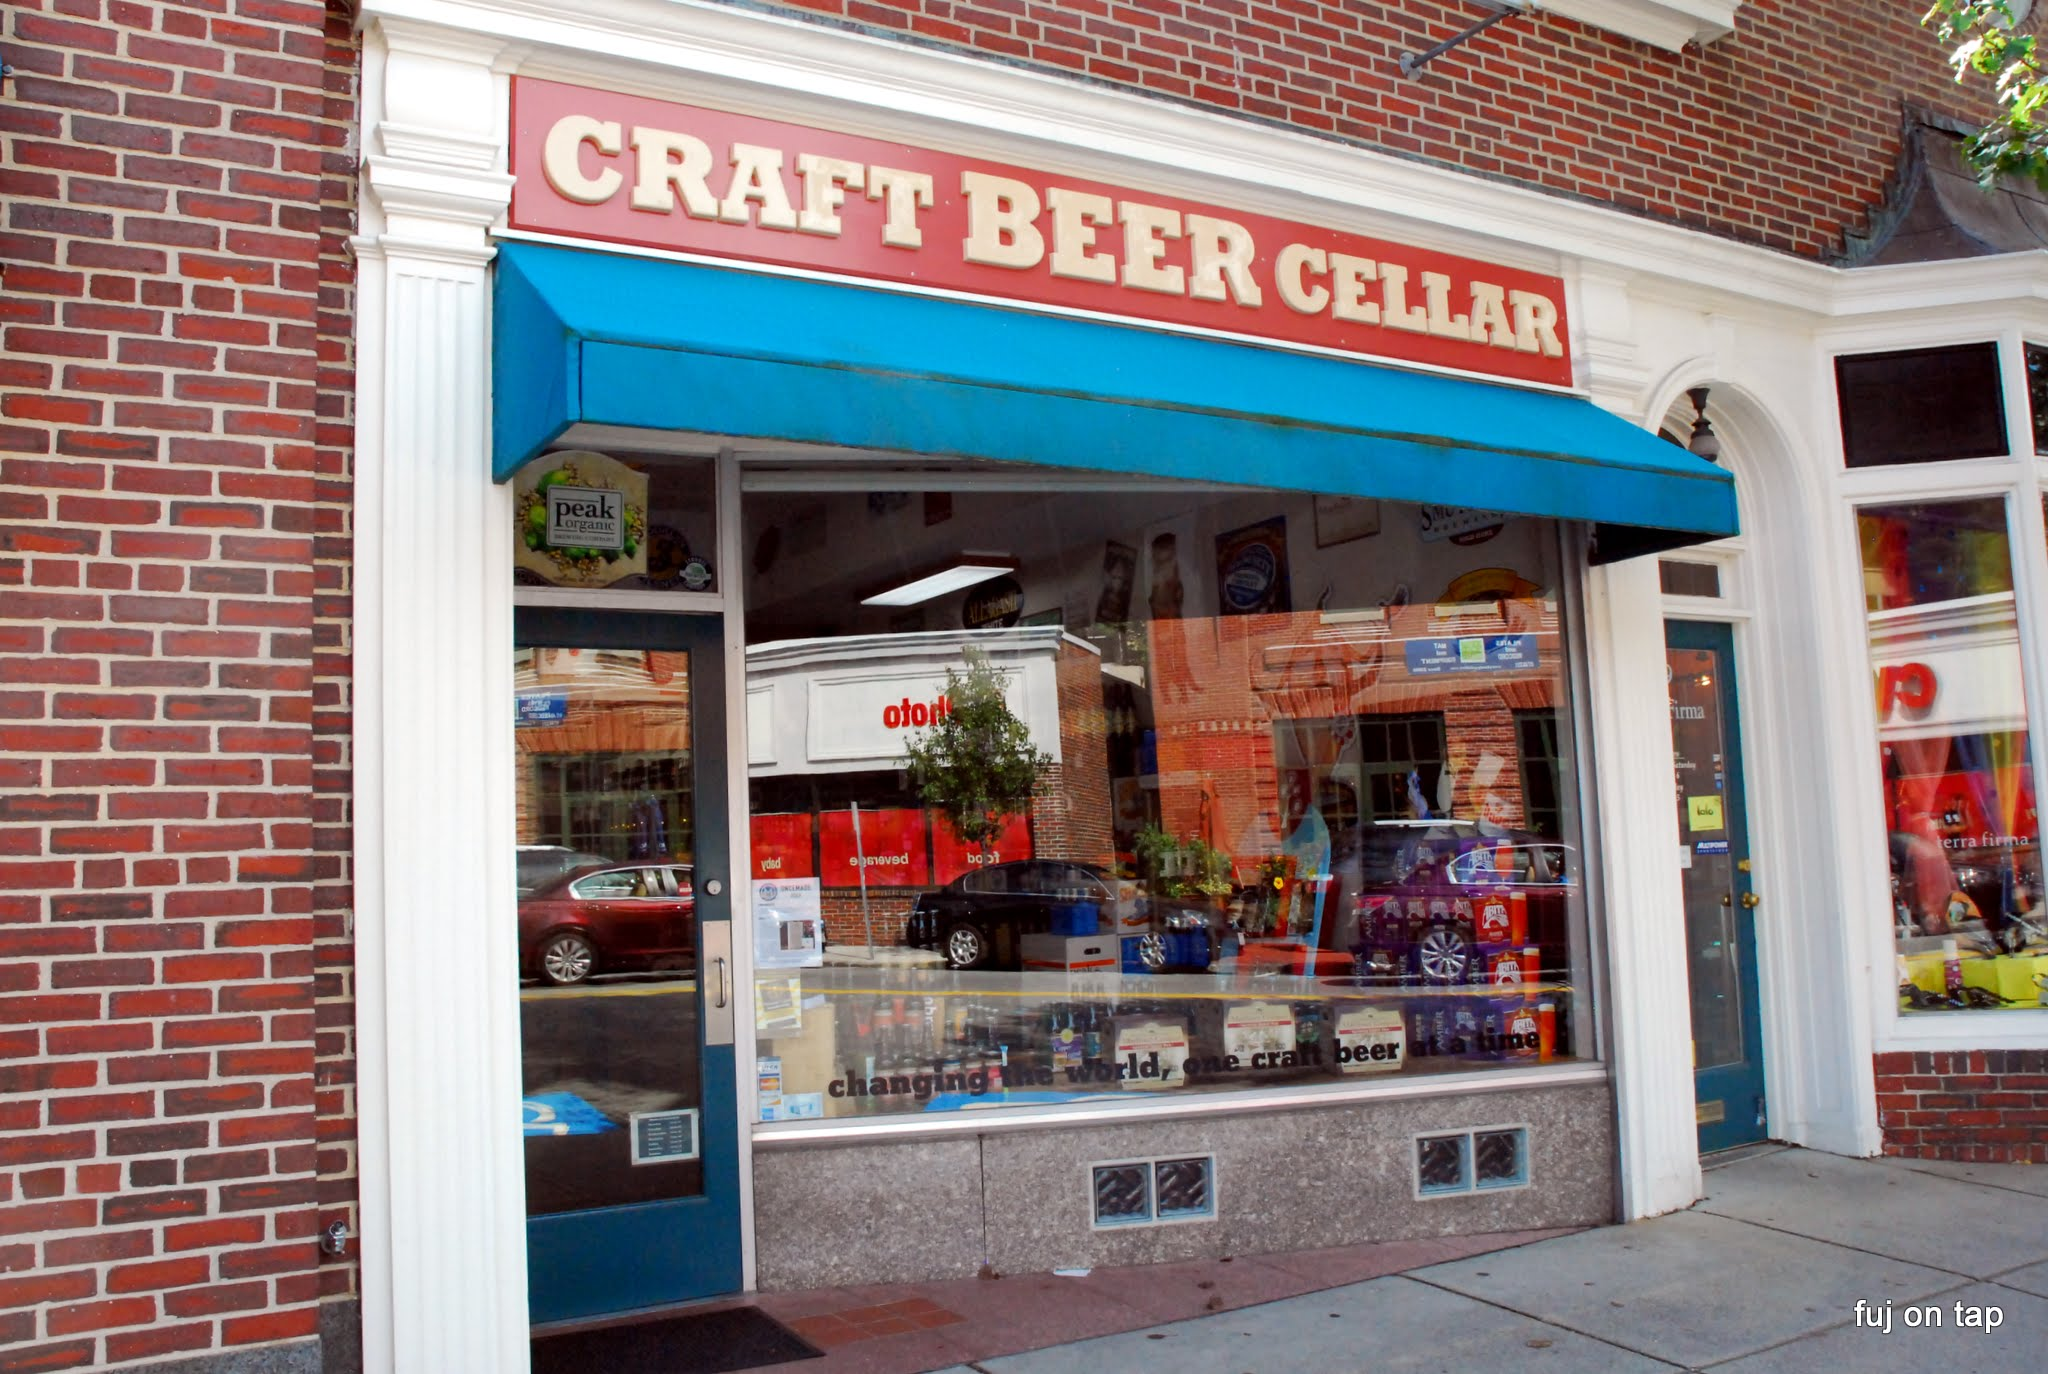 craft beer cellar run at craft cellar matthew fuj scher 1399